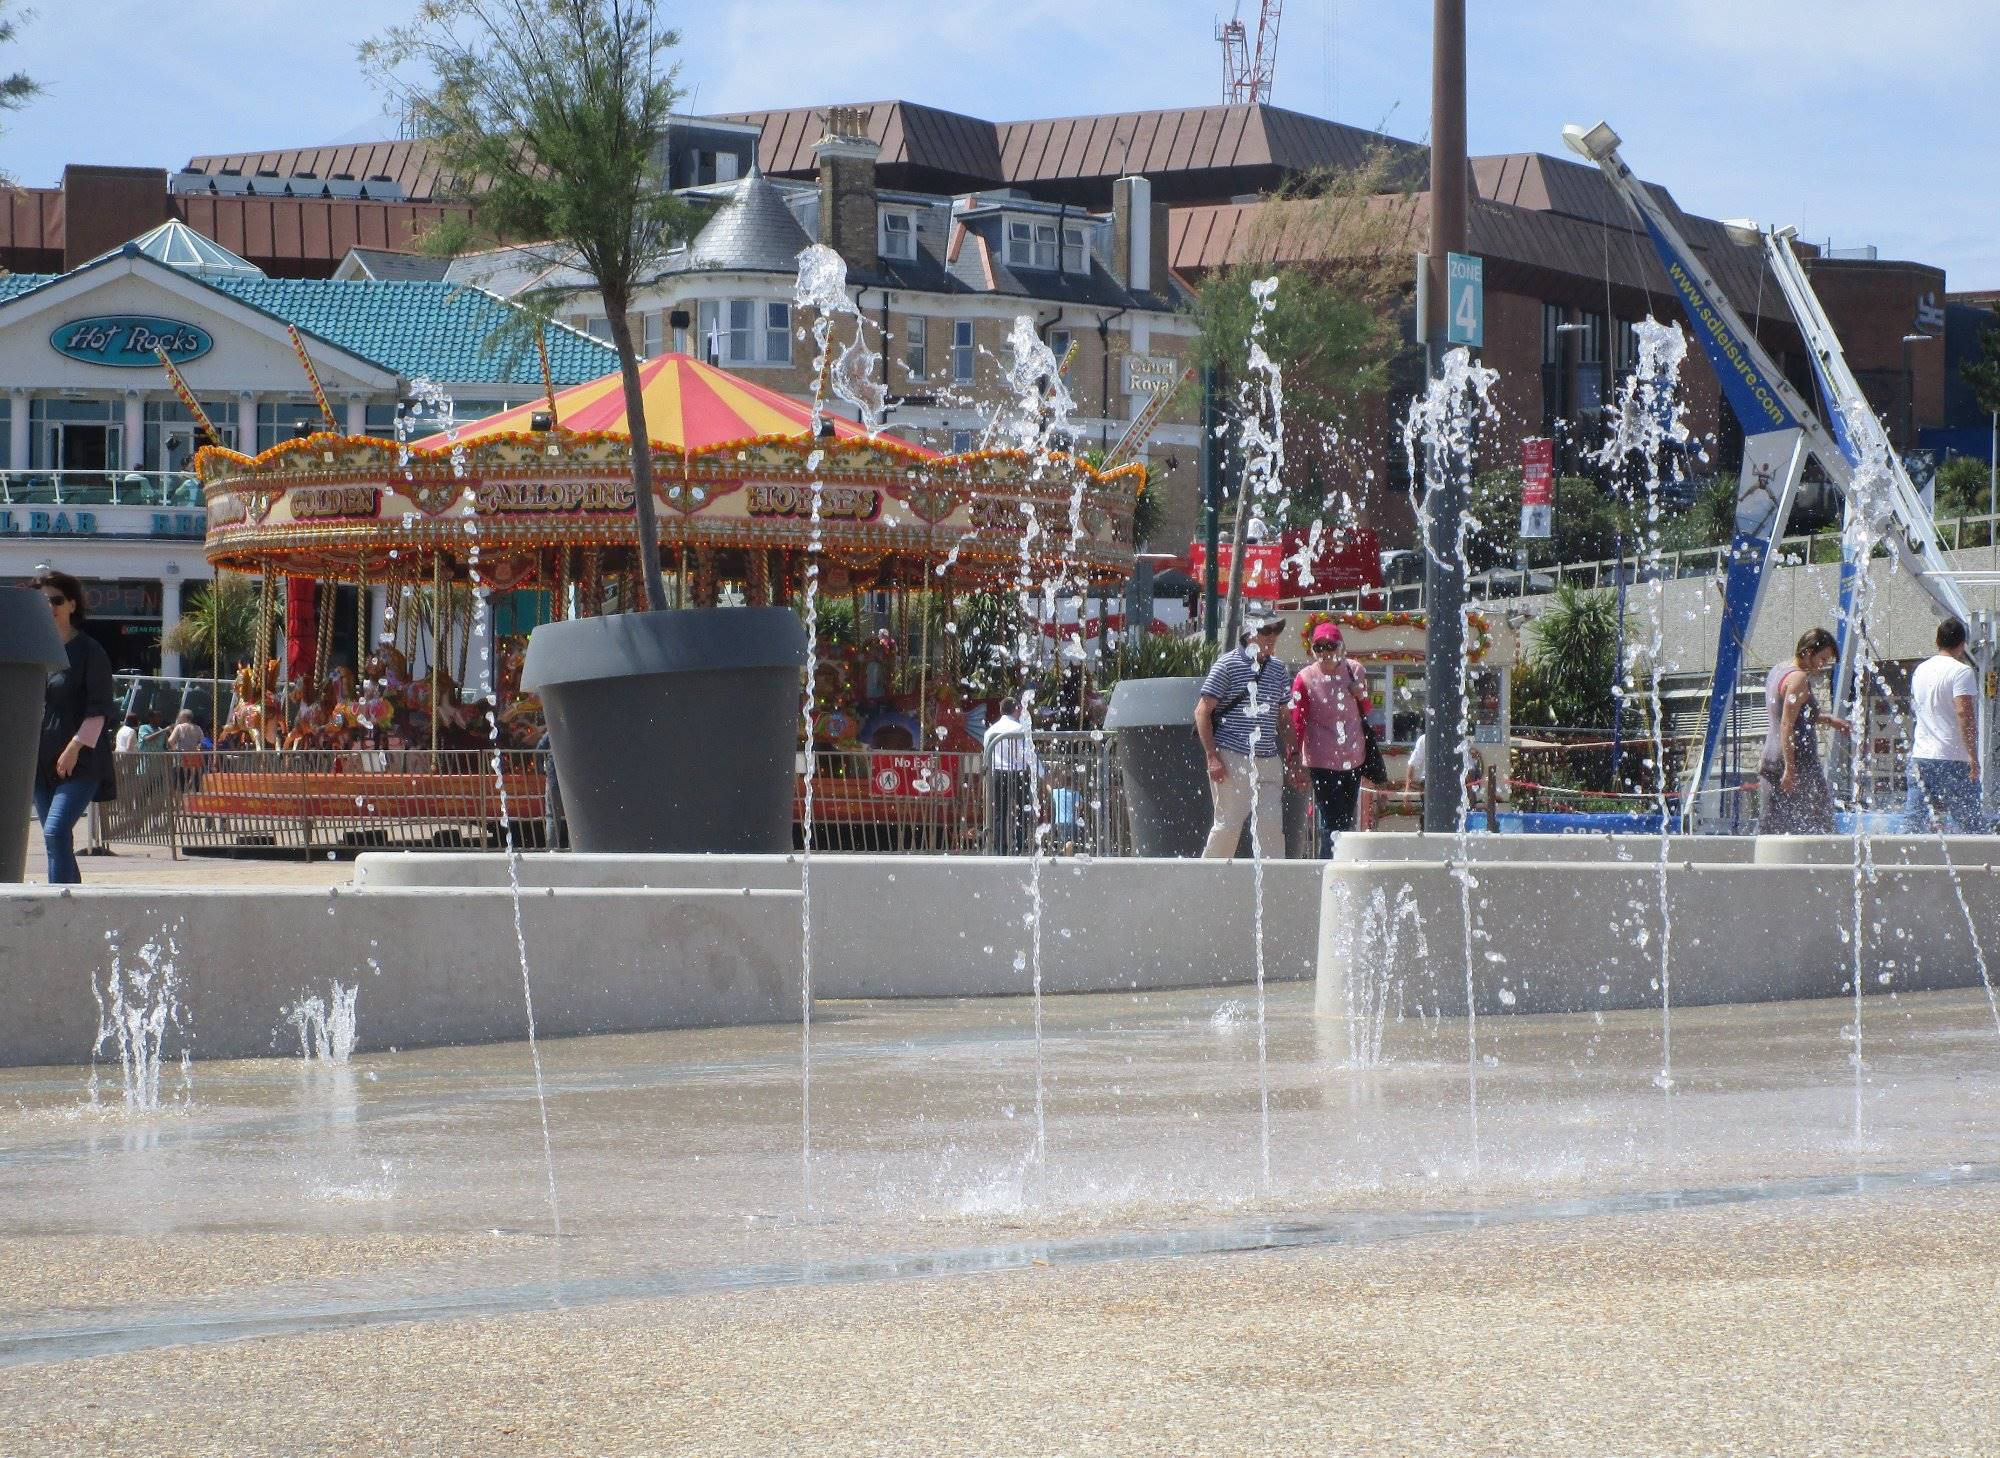 The New Sprinklers At Pier Approach Have Proved Very Popular And With Beach Only A Stones Throw Away Youll Fantastic Day Of Wet Fun